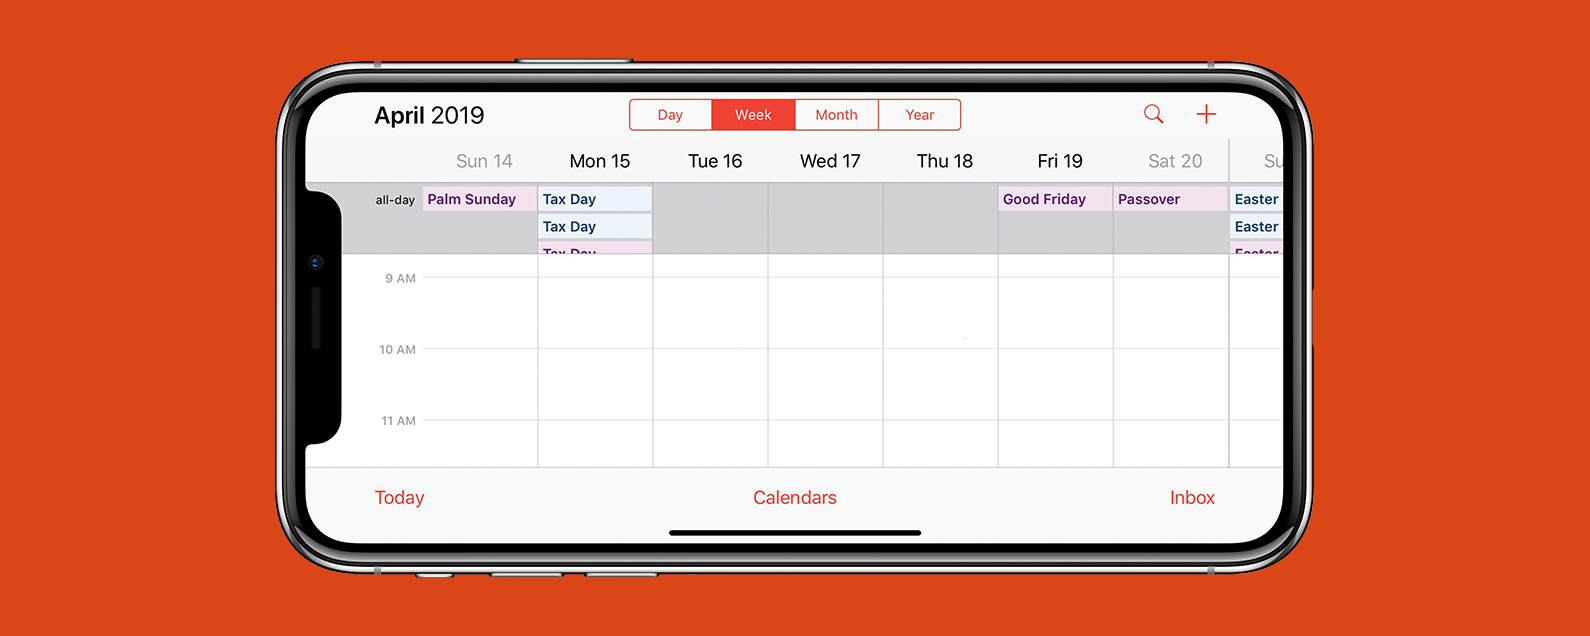 How To See The Week View In The Calendar App On Your Iphone